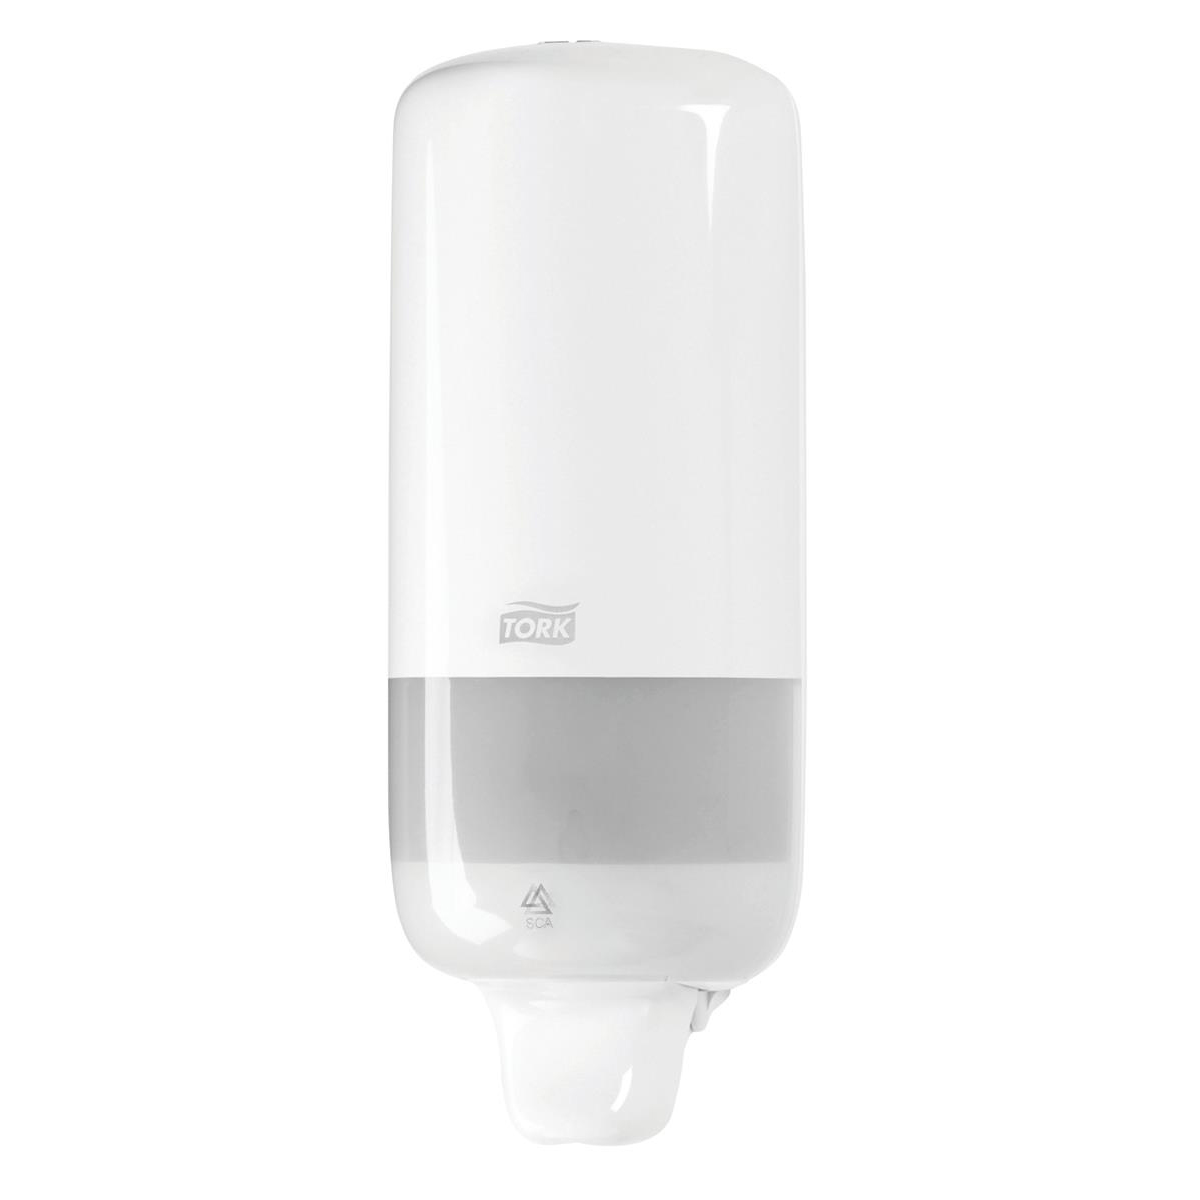 Hand Soaps & Dispensers Tork Liquid Soap Dispenser for 1000ml Refills Casing White Ref 560000